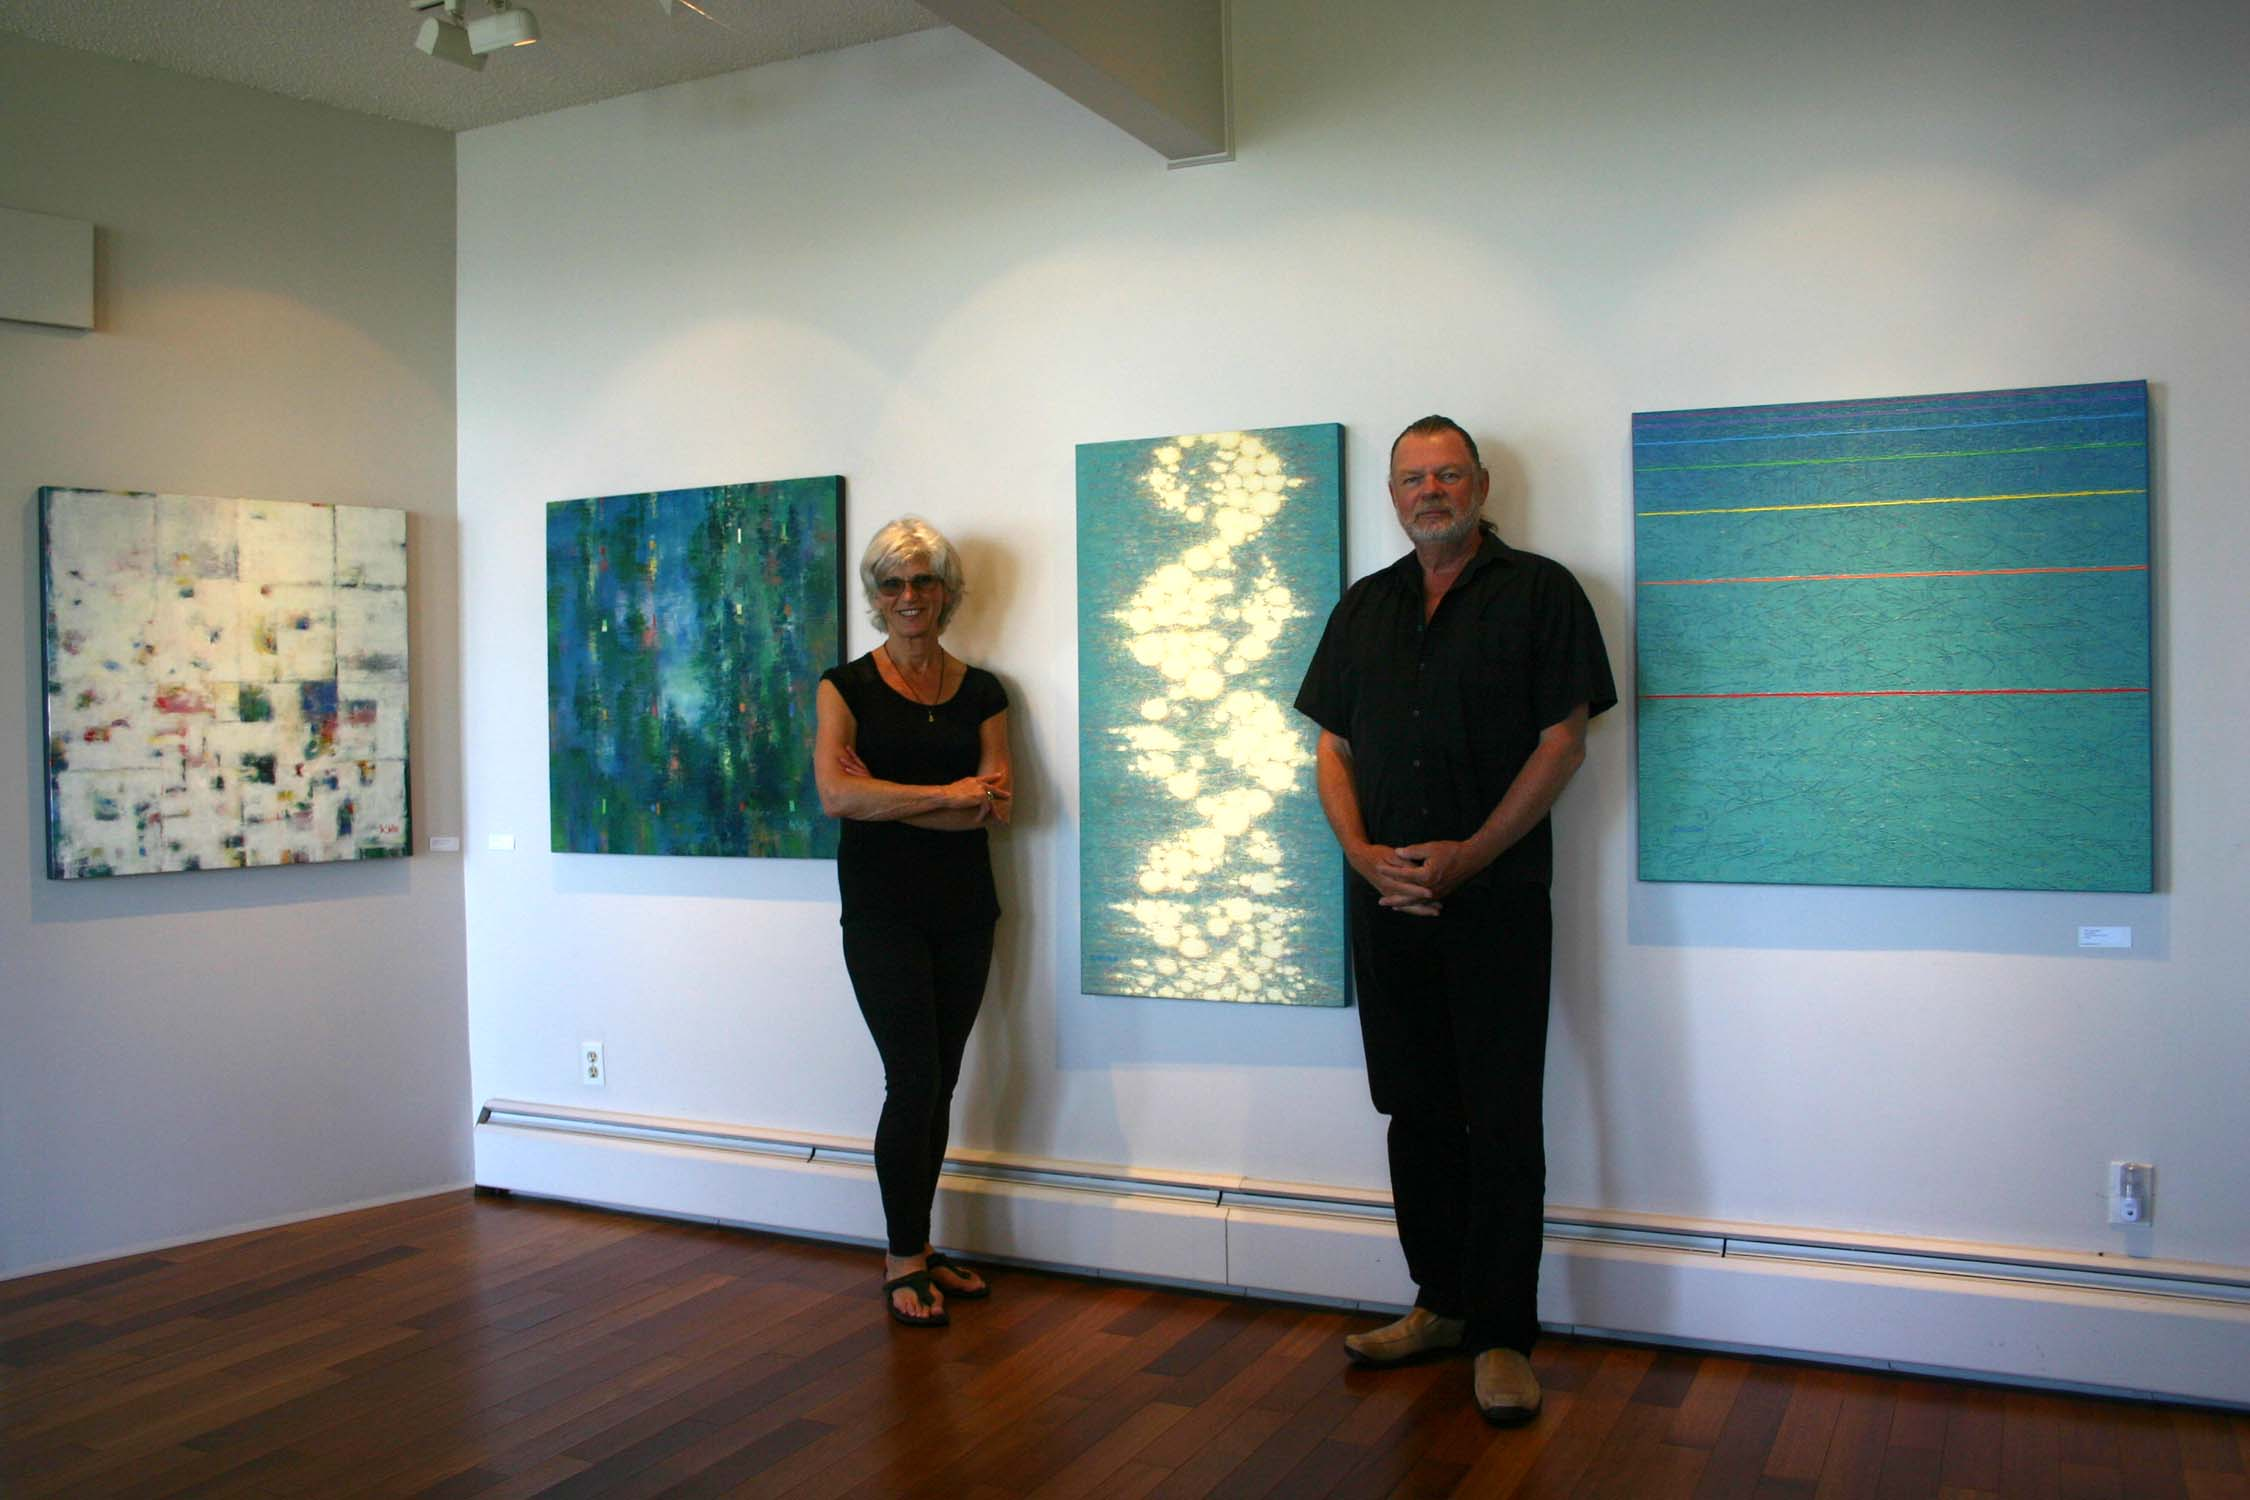 Shelton Art | MONICA SHELTON | BARRY SHELTON Picture